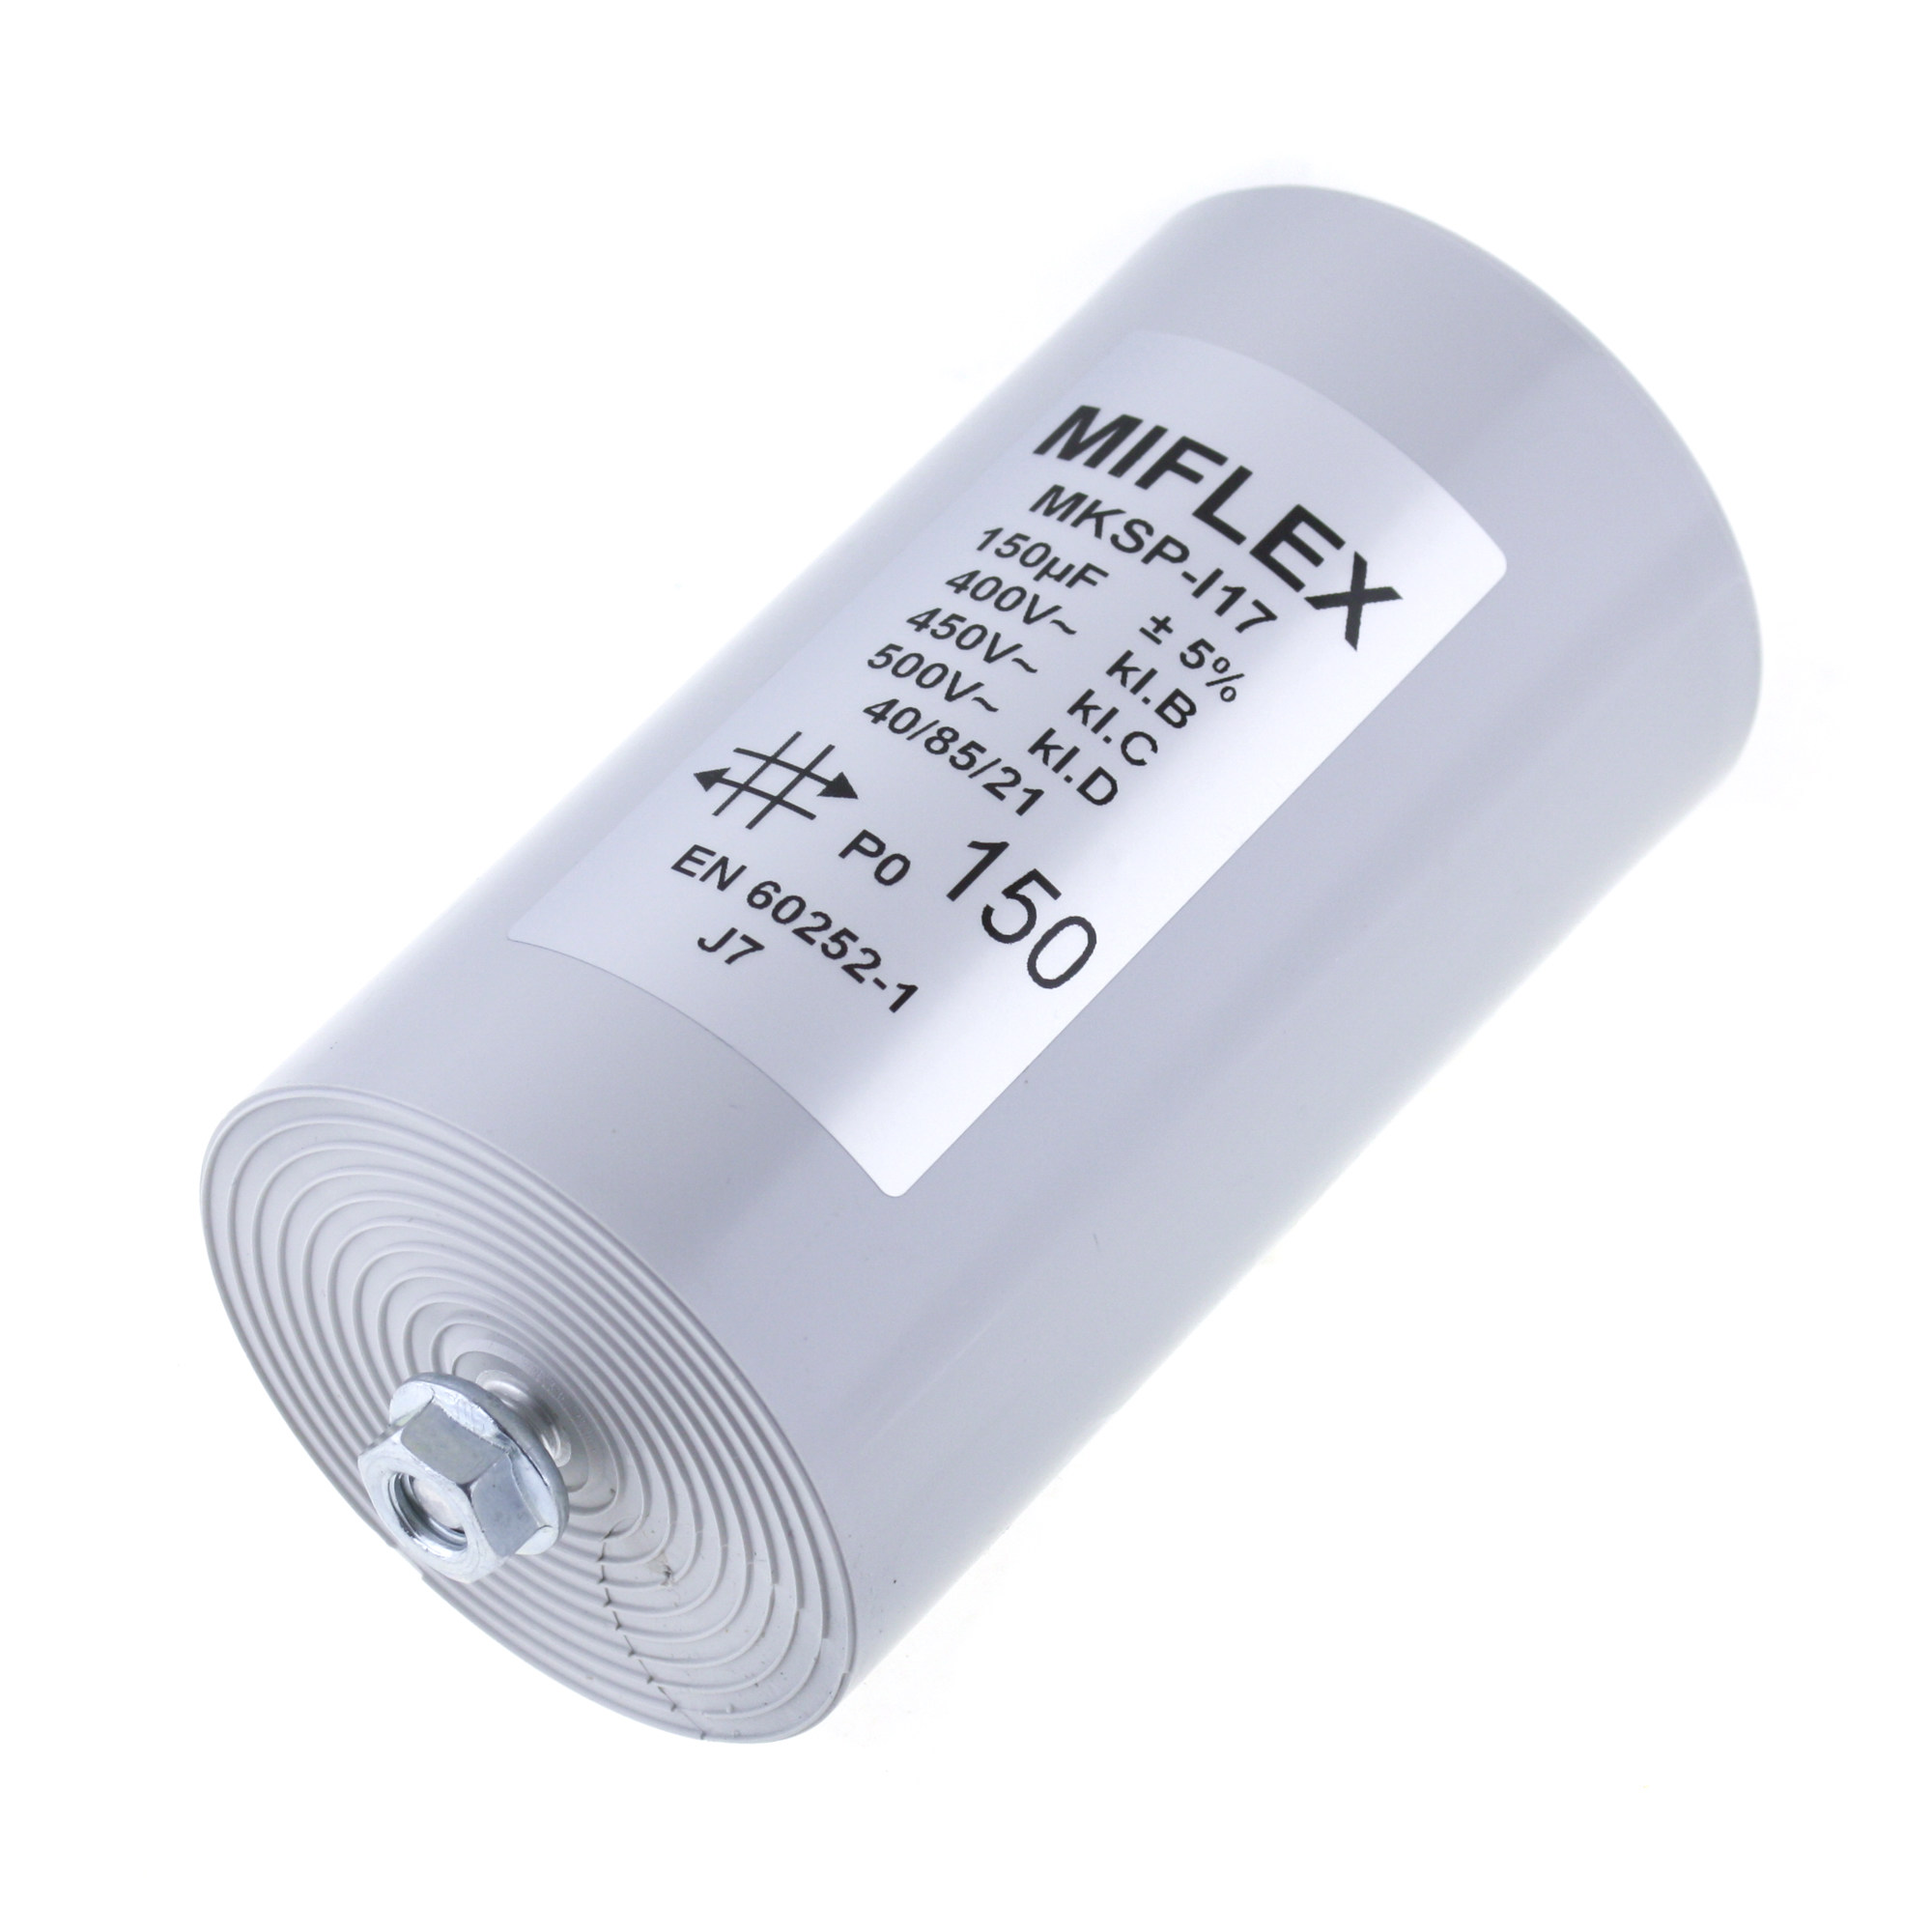 Motor Capacitor 150uF-400V, 65x119mm, flat connection